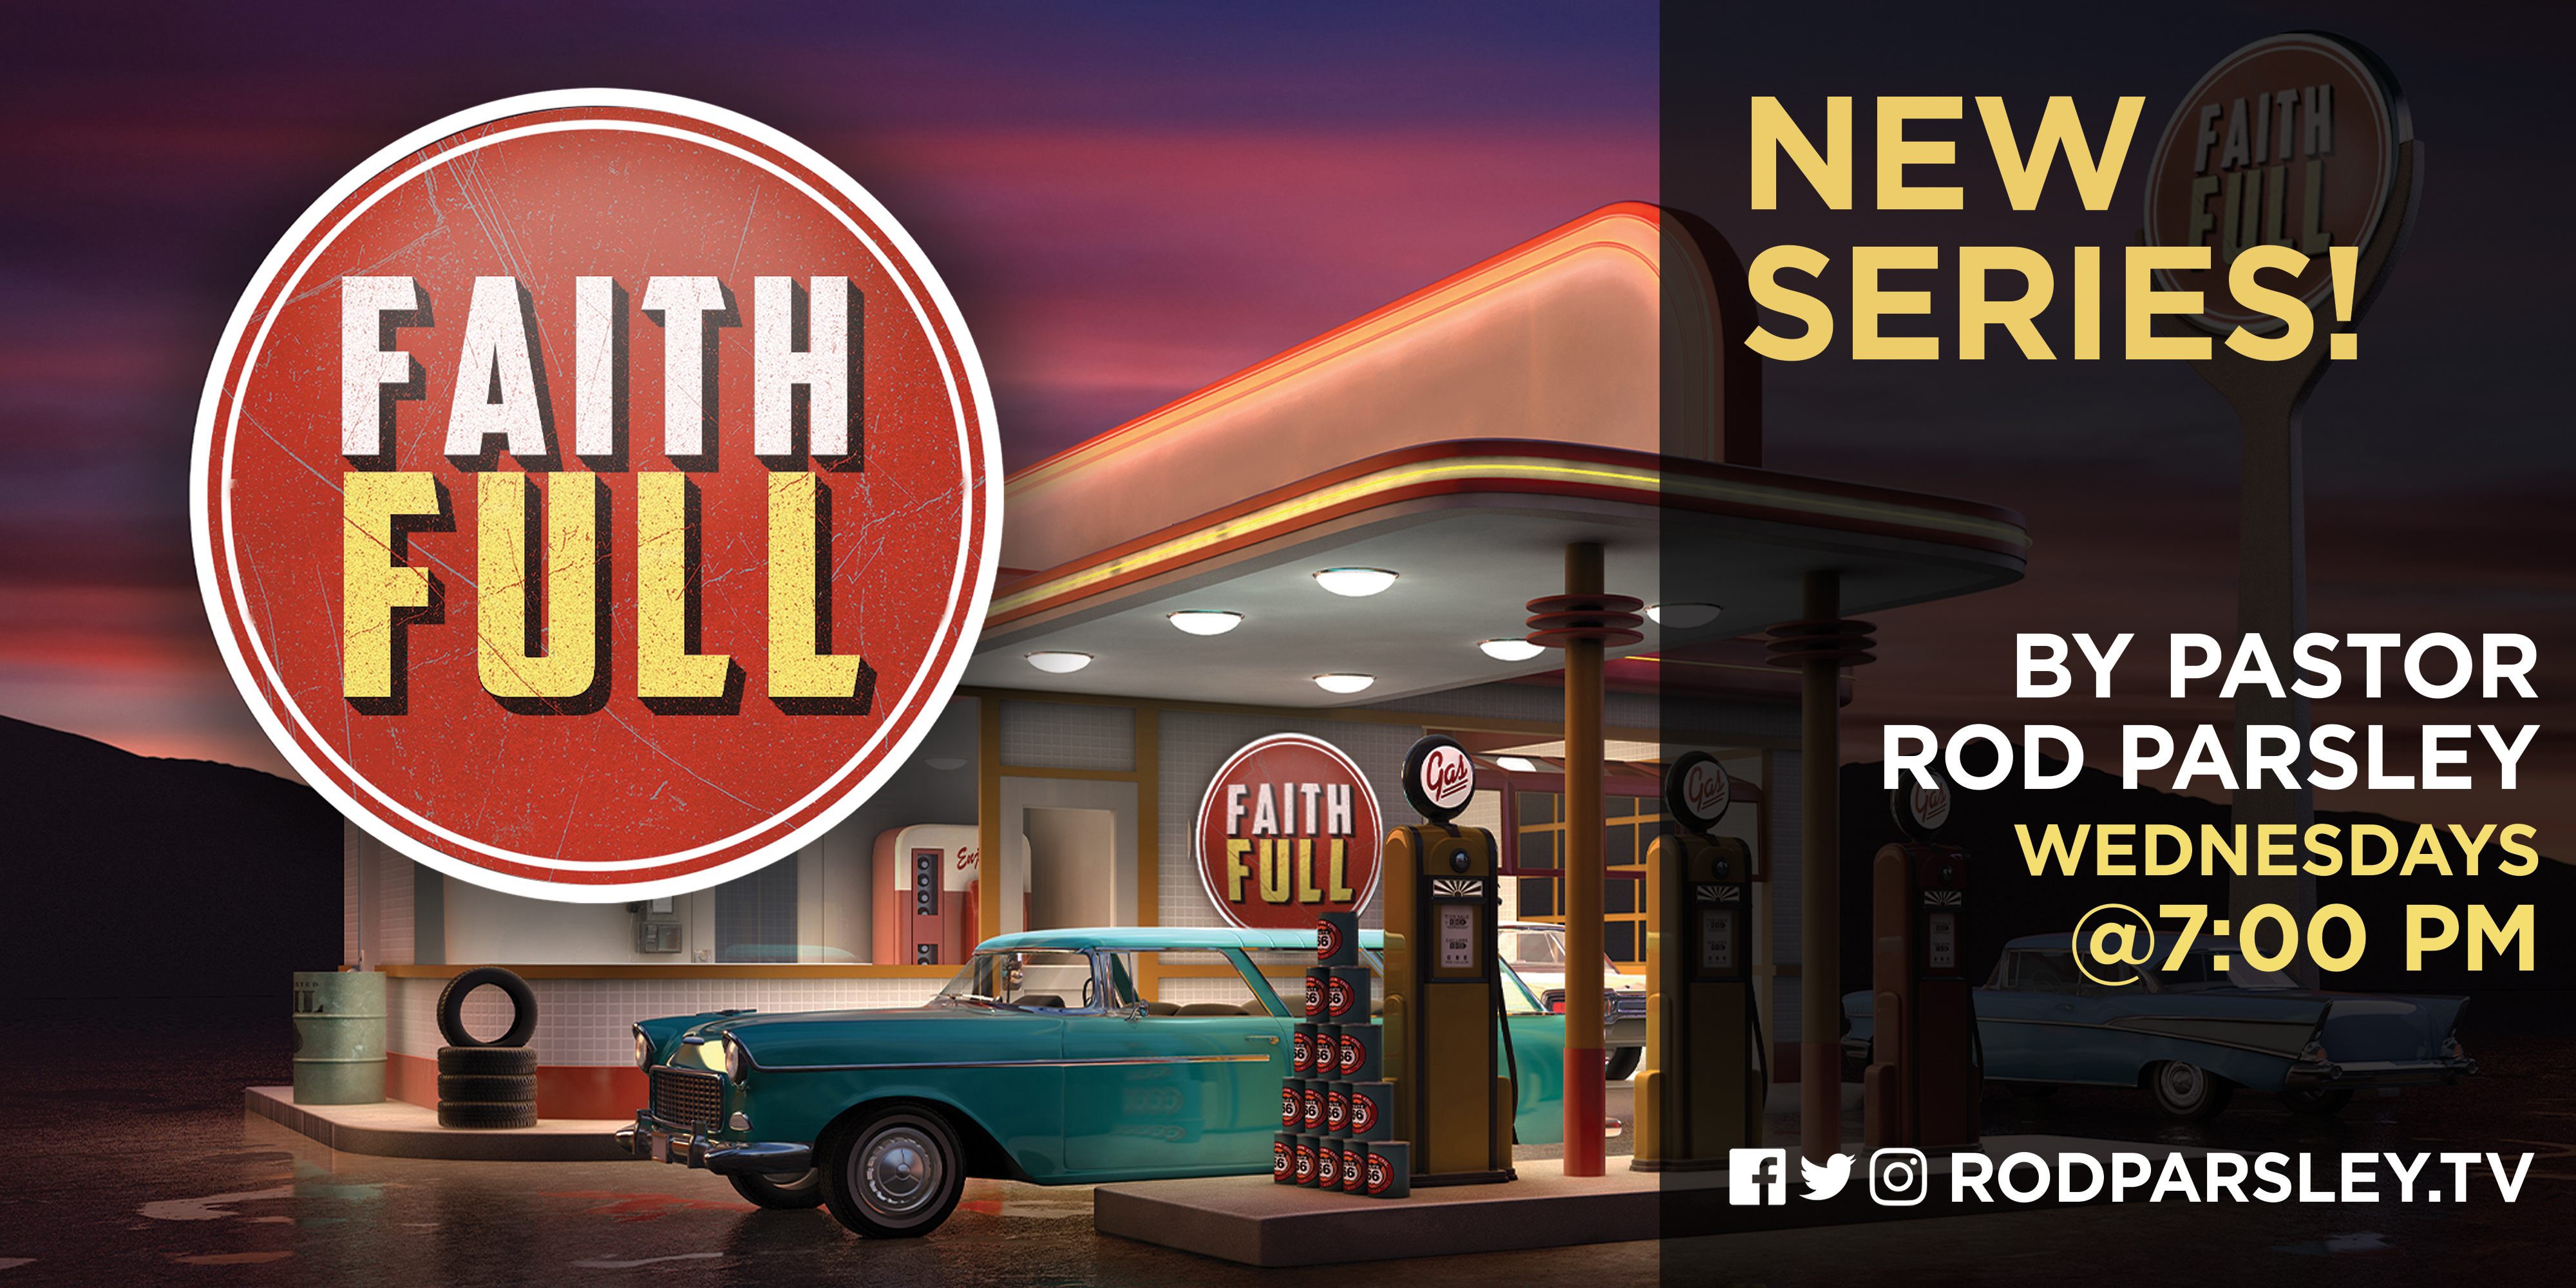 Faith FULL New Series! By Pastor Rod Parsley Wedness @7:00PM Facebook Twitter Instagram Rodparsley.tv